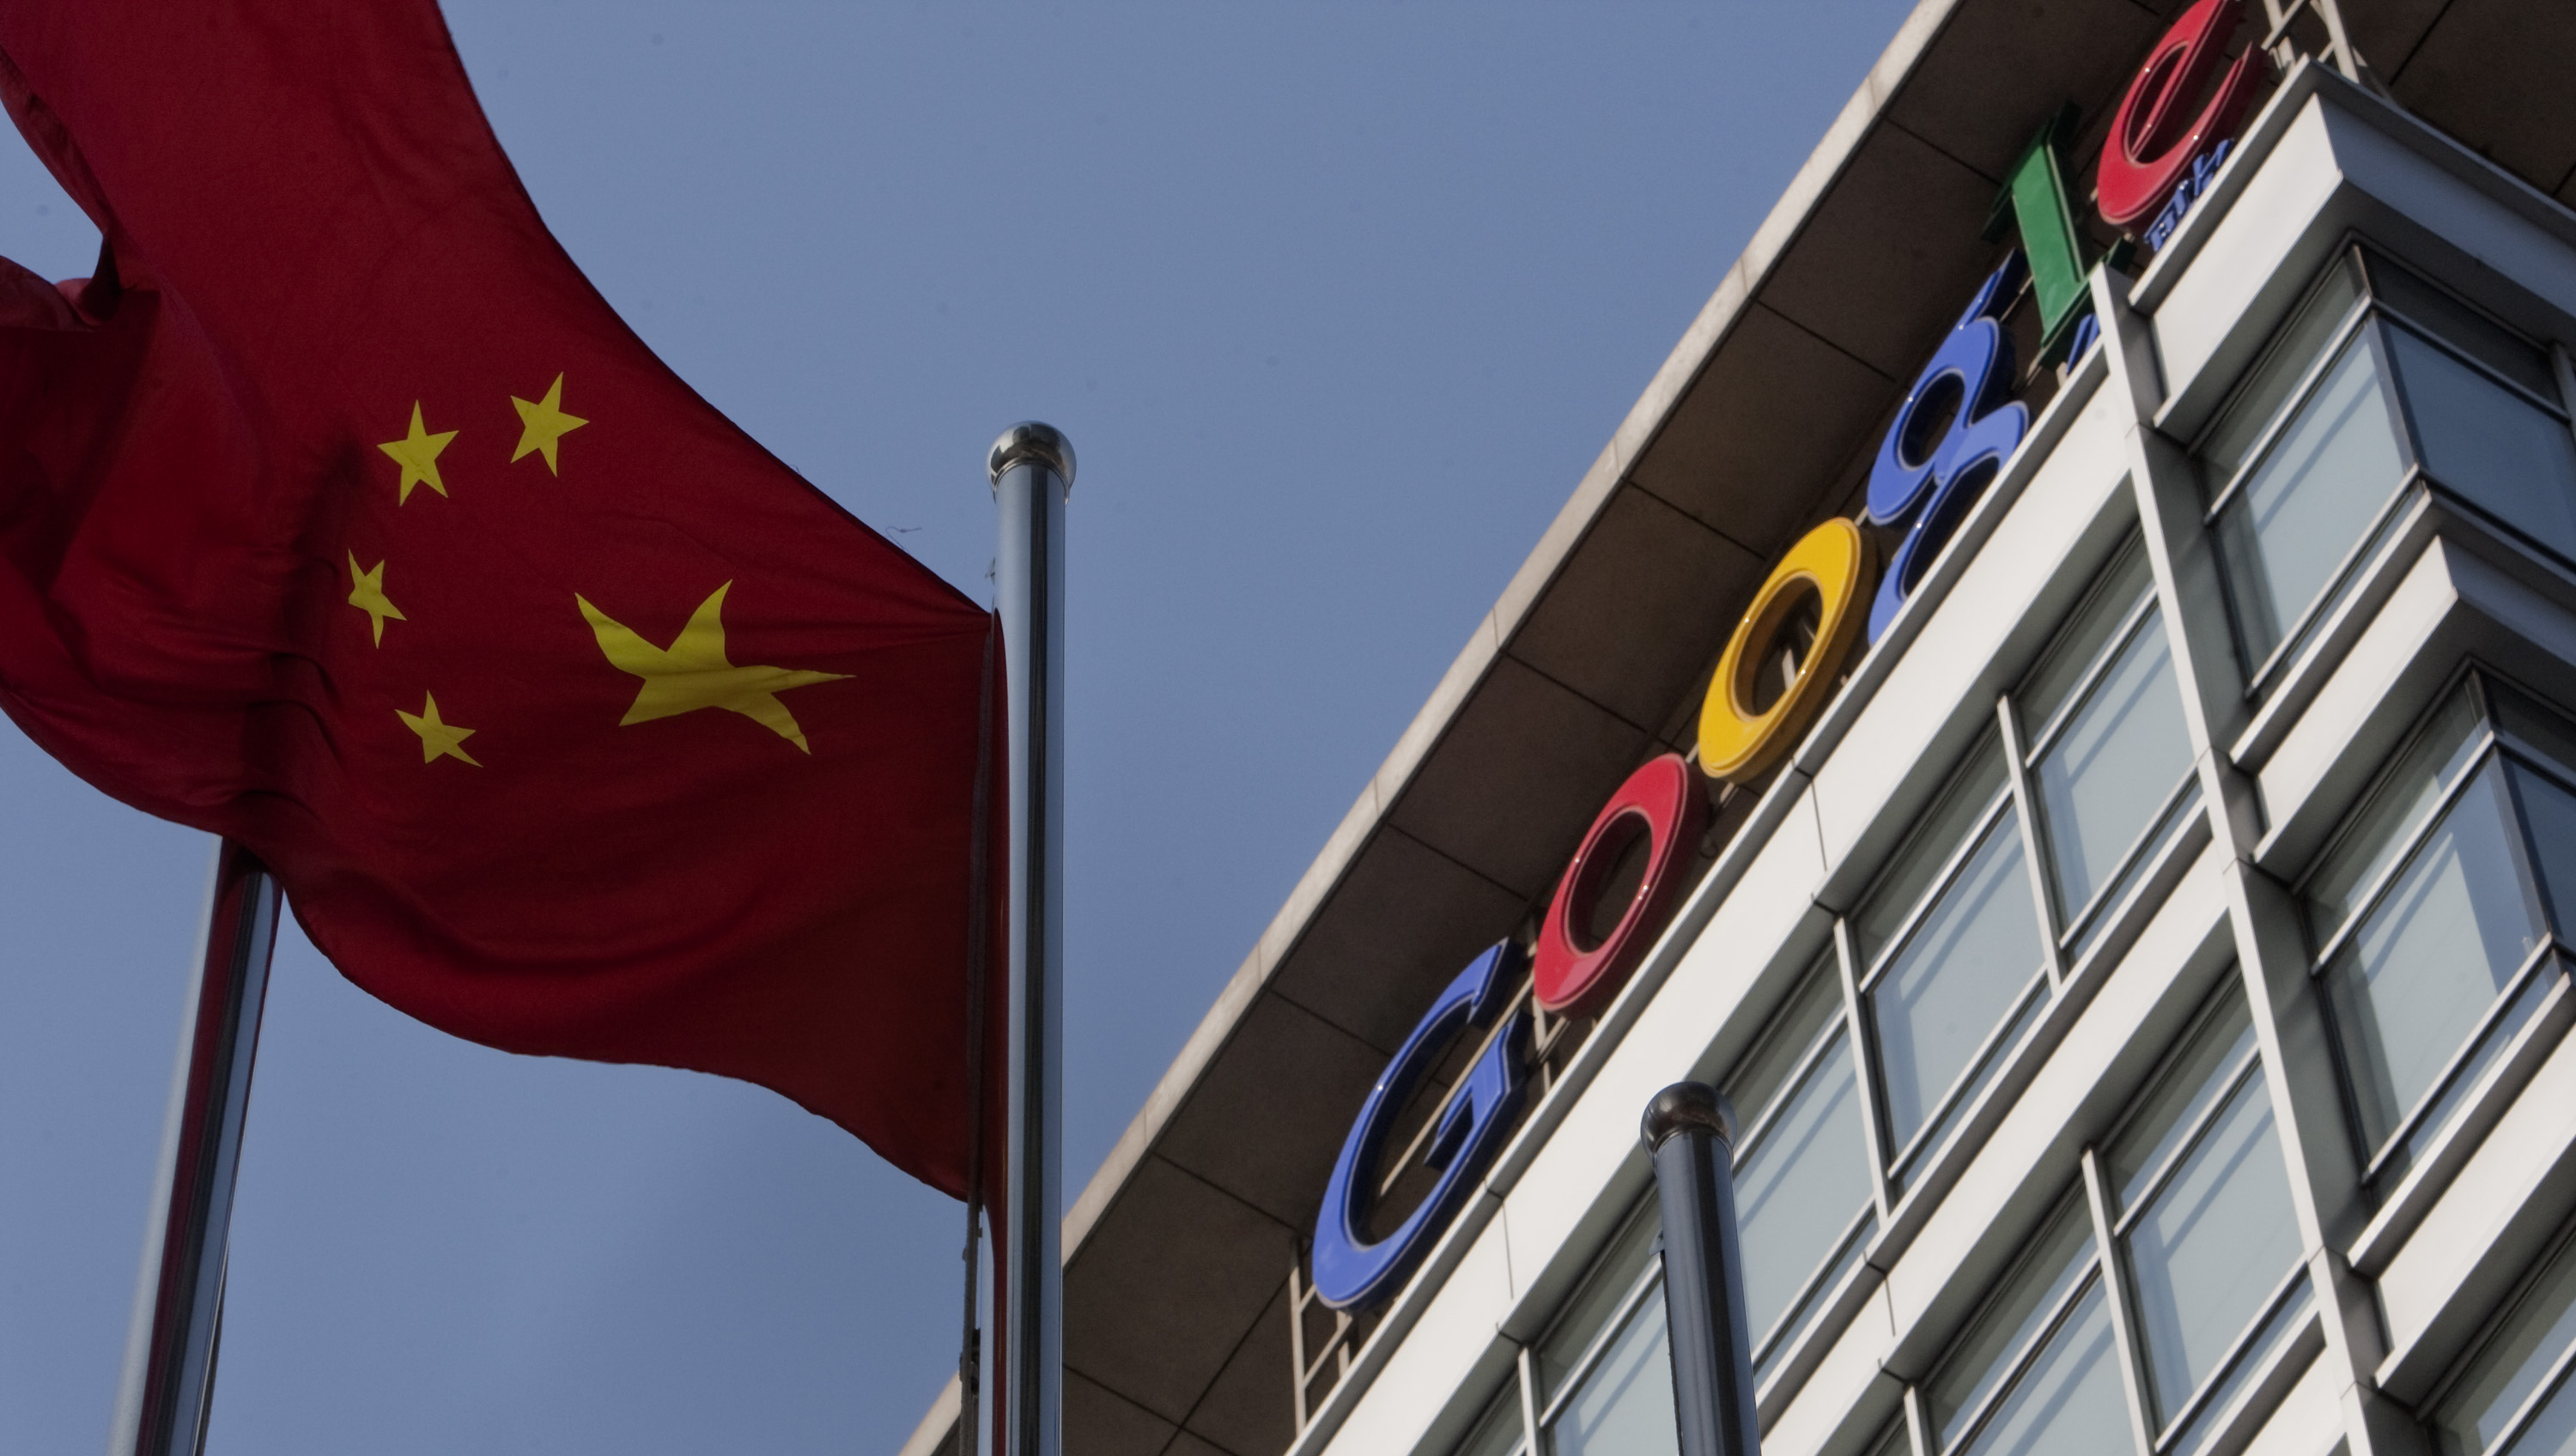 The Chinese flag flies outside the Google Inc. office in Beijing, China, on Thursday, Jan. 14, 2010.